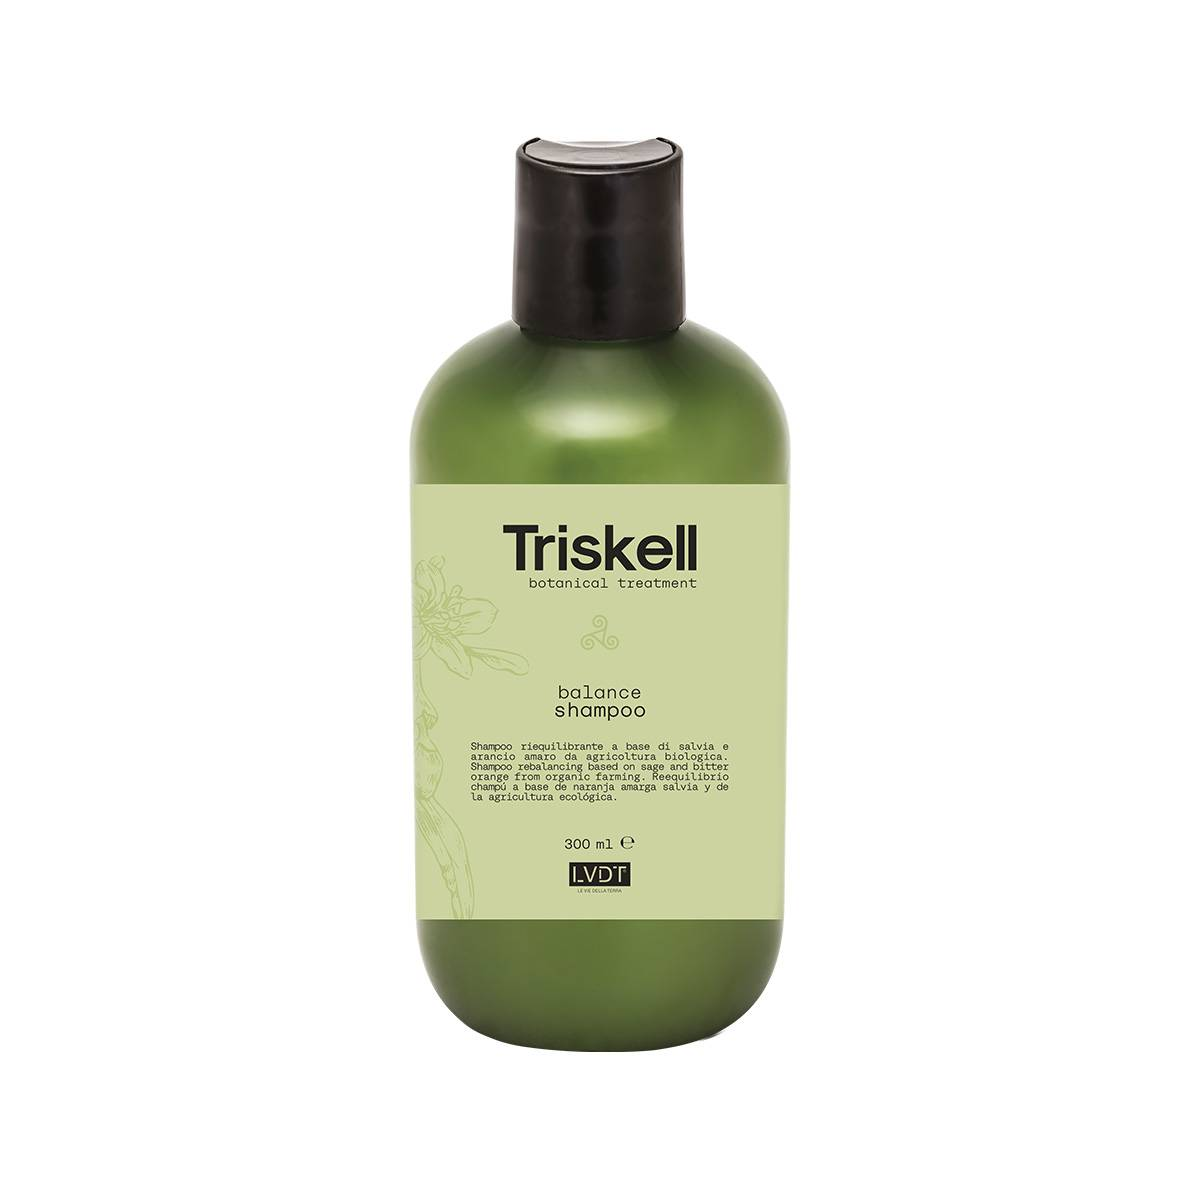 Balance shampoo 300 ml triskell nuova botanical treatment EQUILIBRIO/SEBO